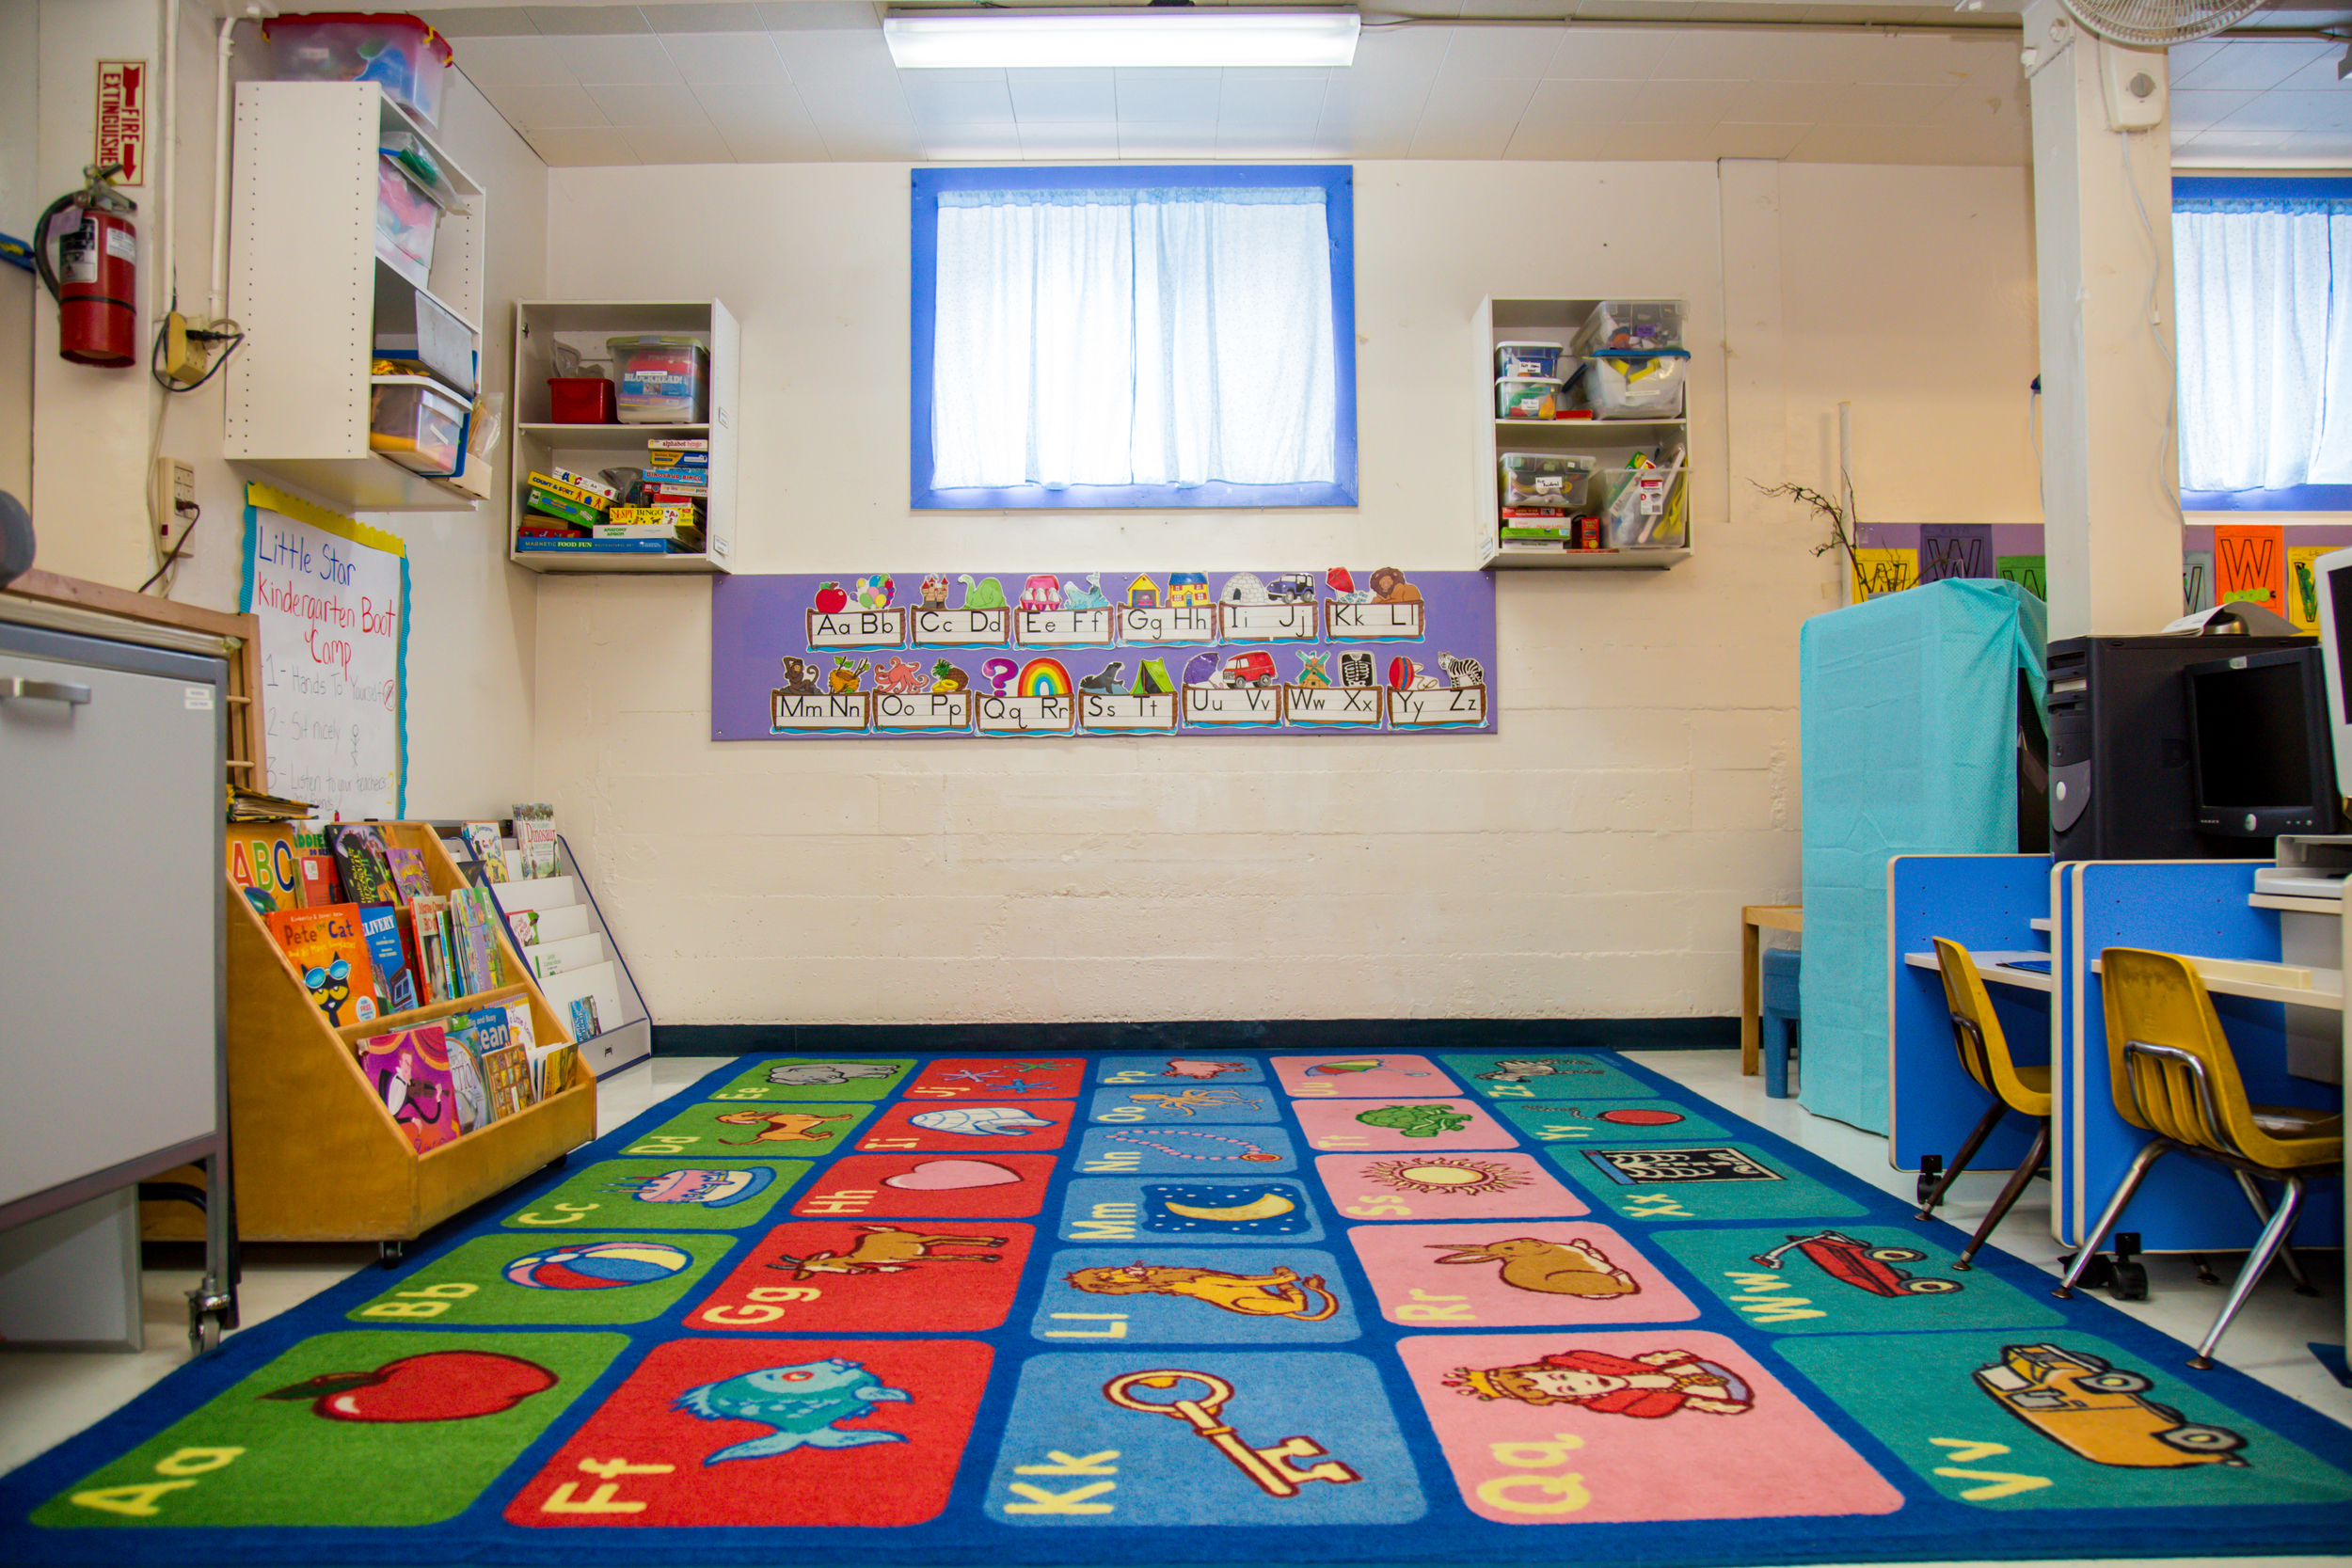 Our library features a rotating selection of books that are always available to children. We havea whiteboard (not pictured) for pre-reading and writing practice in an environment surrounded by the alphabet and stories.